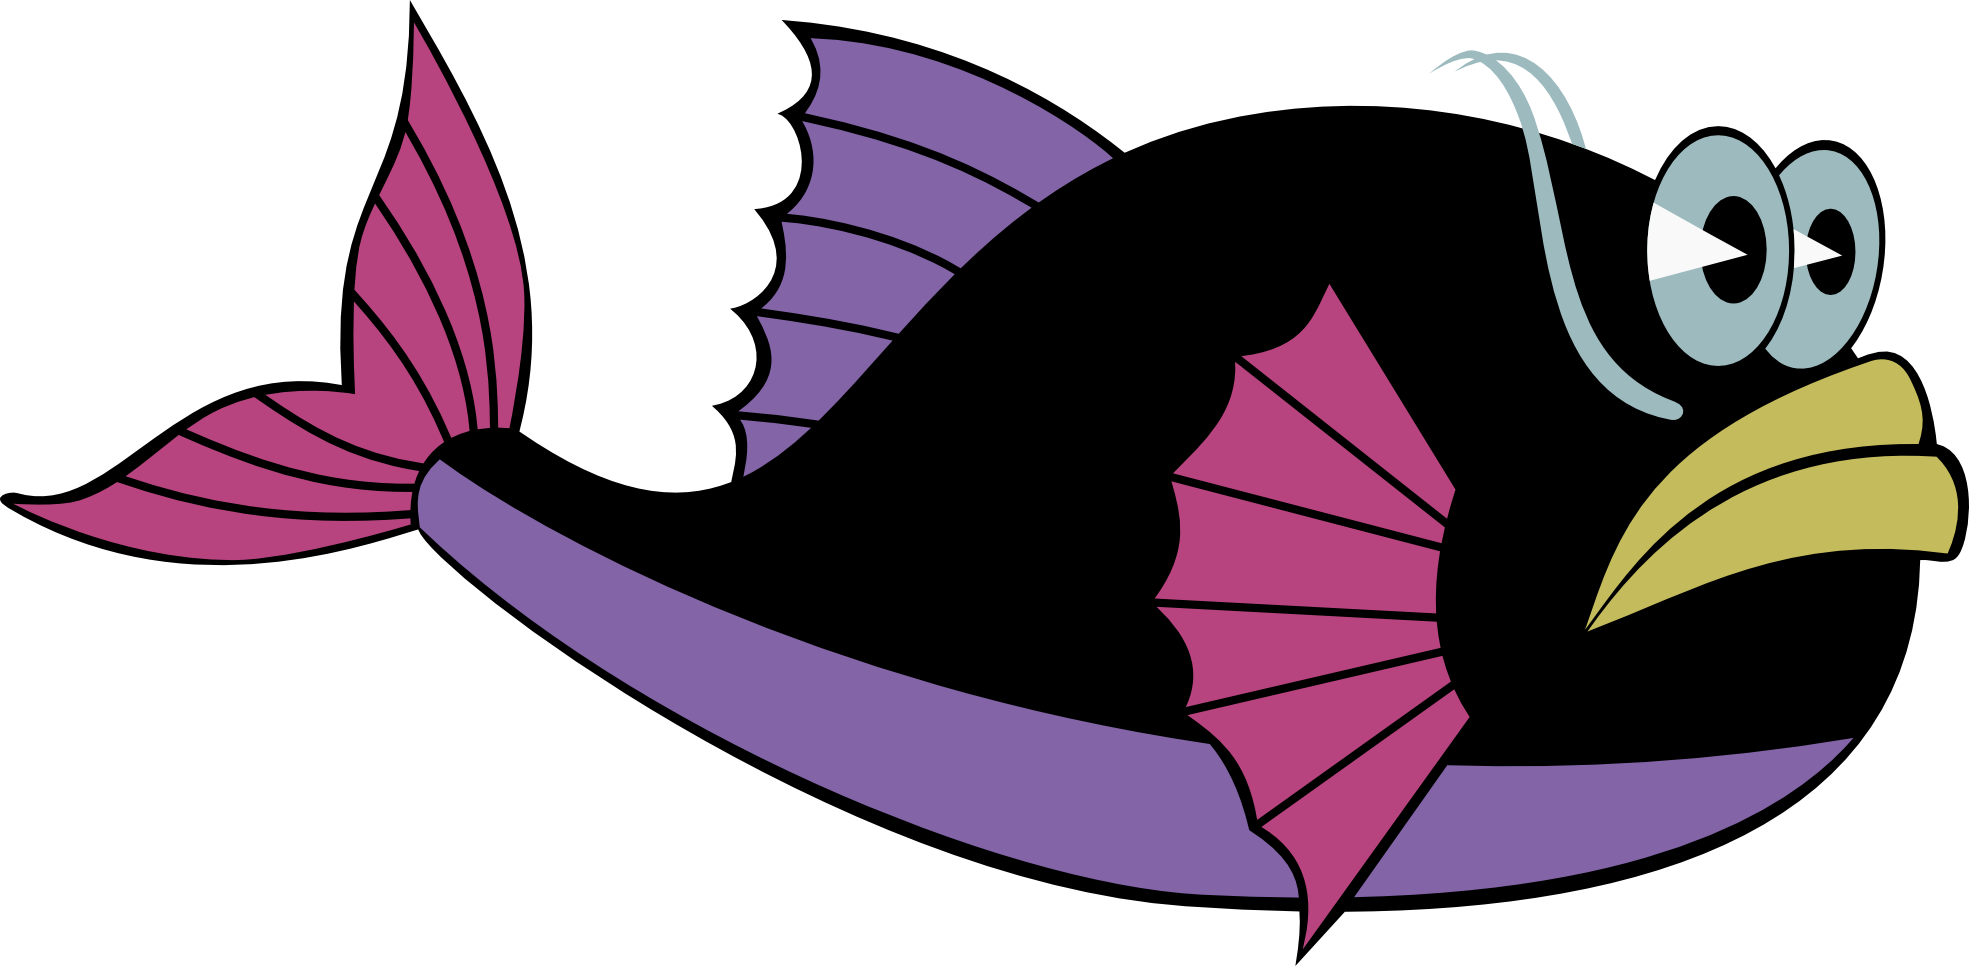 Fish clipart character. Of library clip art